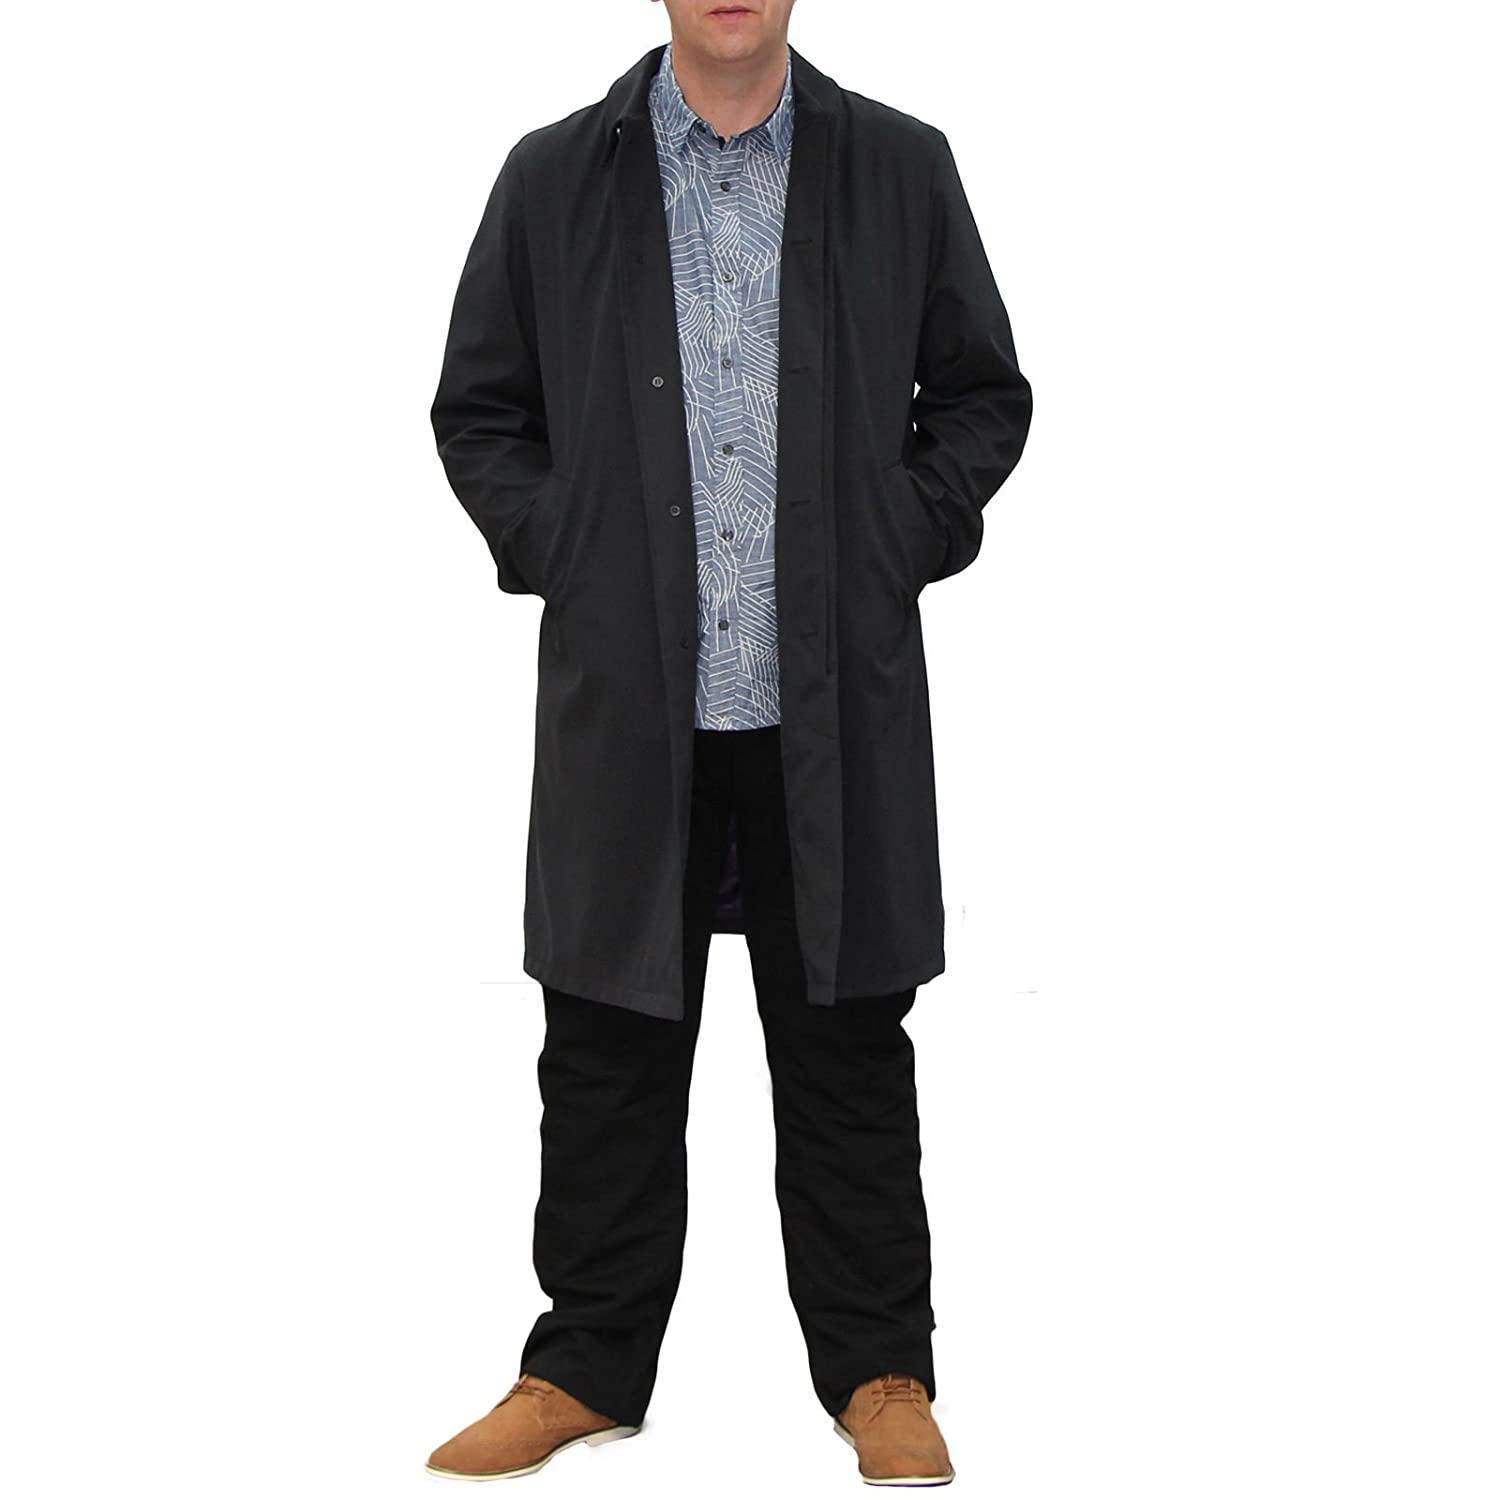 Men's Harry Brown Big Size Black Rain Coat 2X - 6X